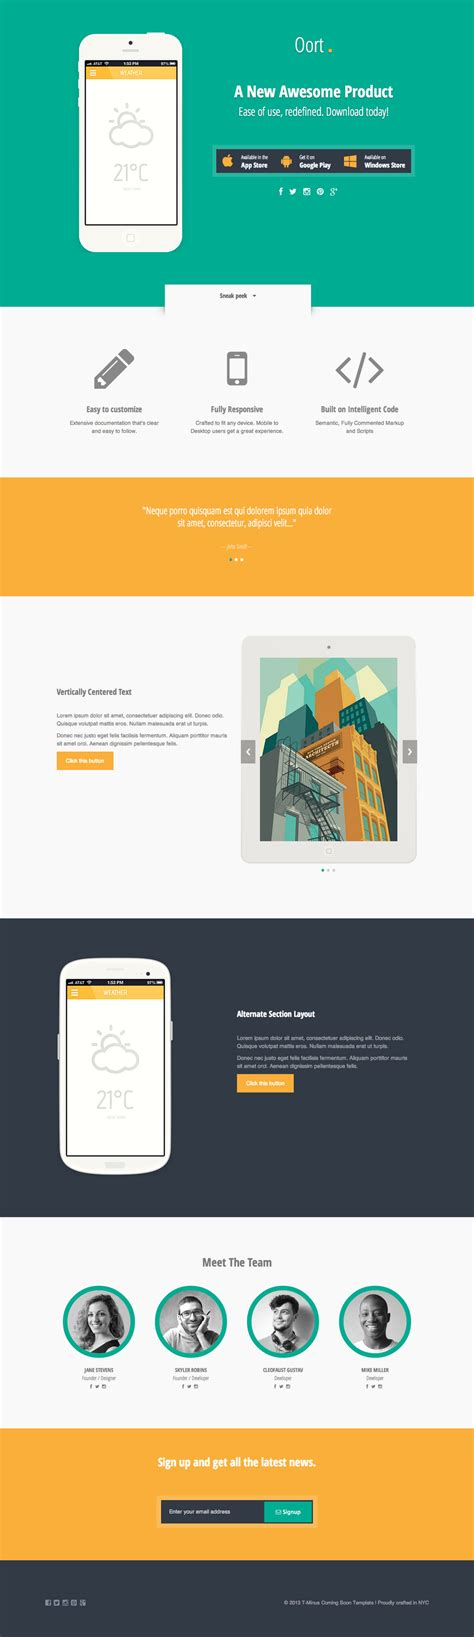 oort app landing page template by kalel06 on deviantart